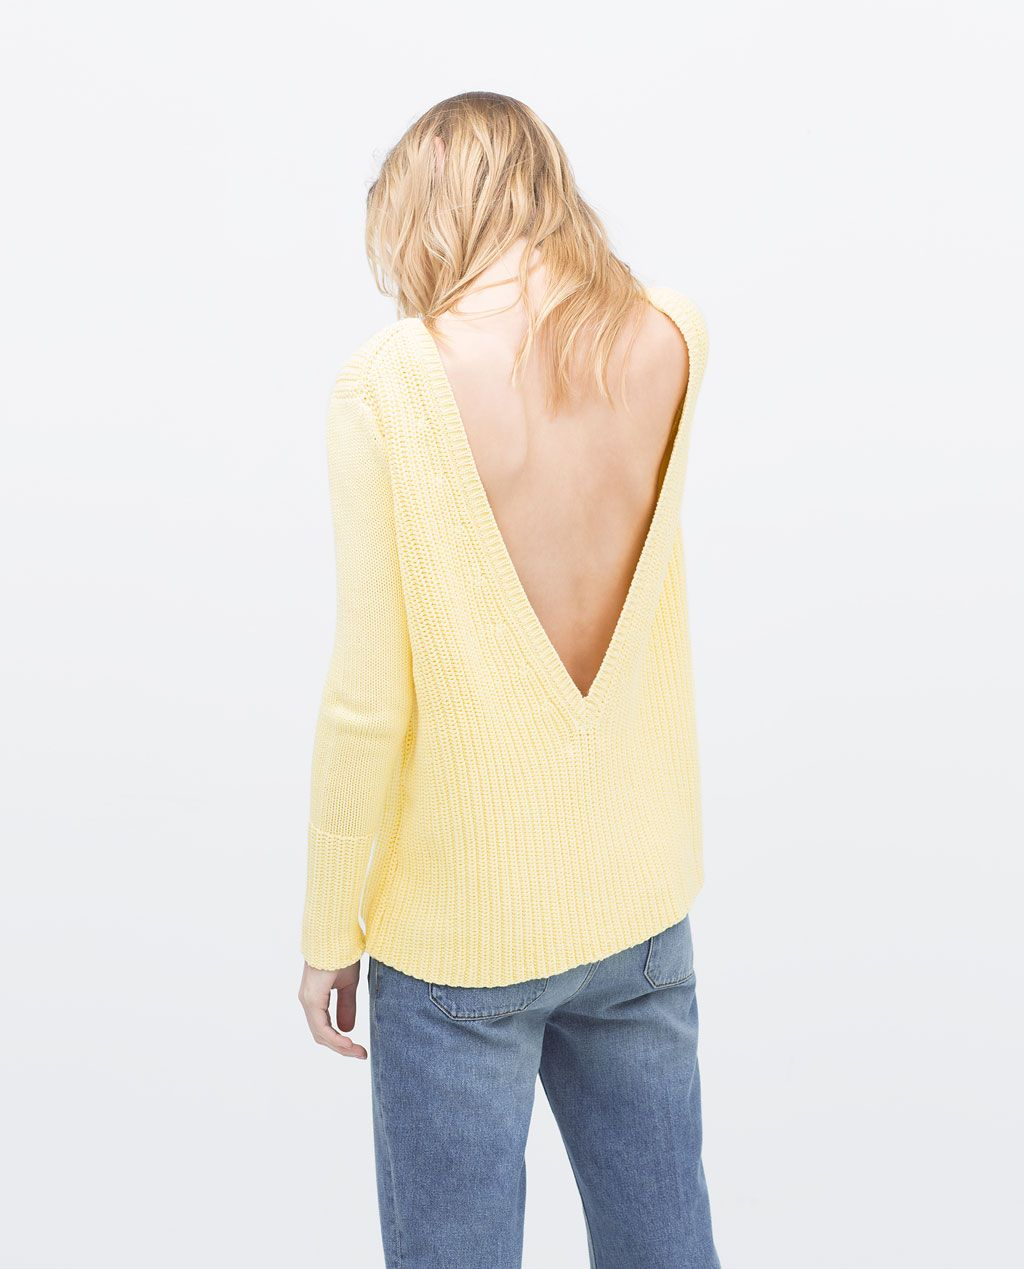 soft pastel yellow sweater with back cleavage | ZARA summer 2015 ...